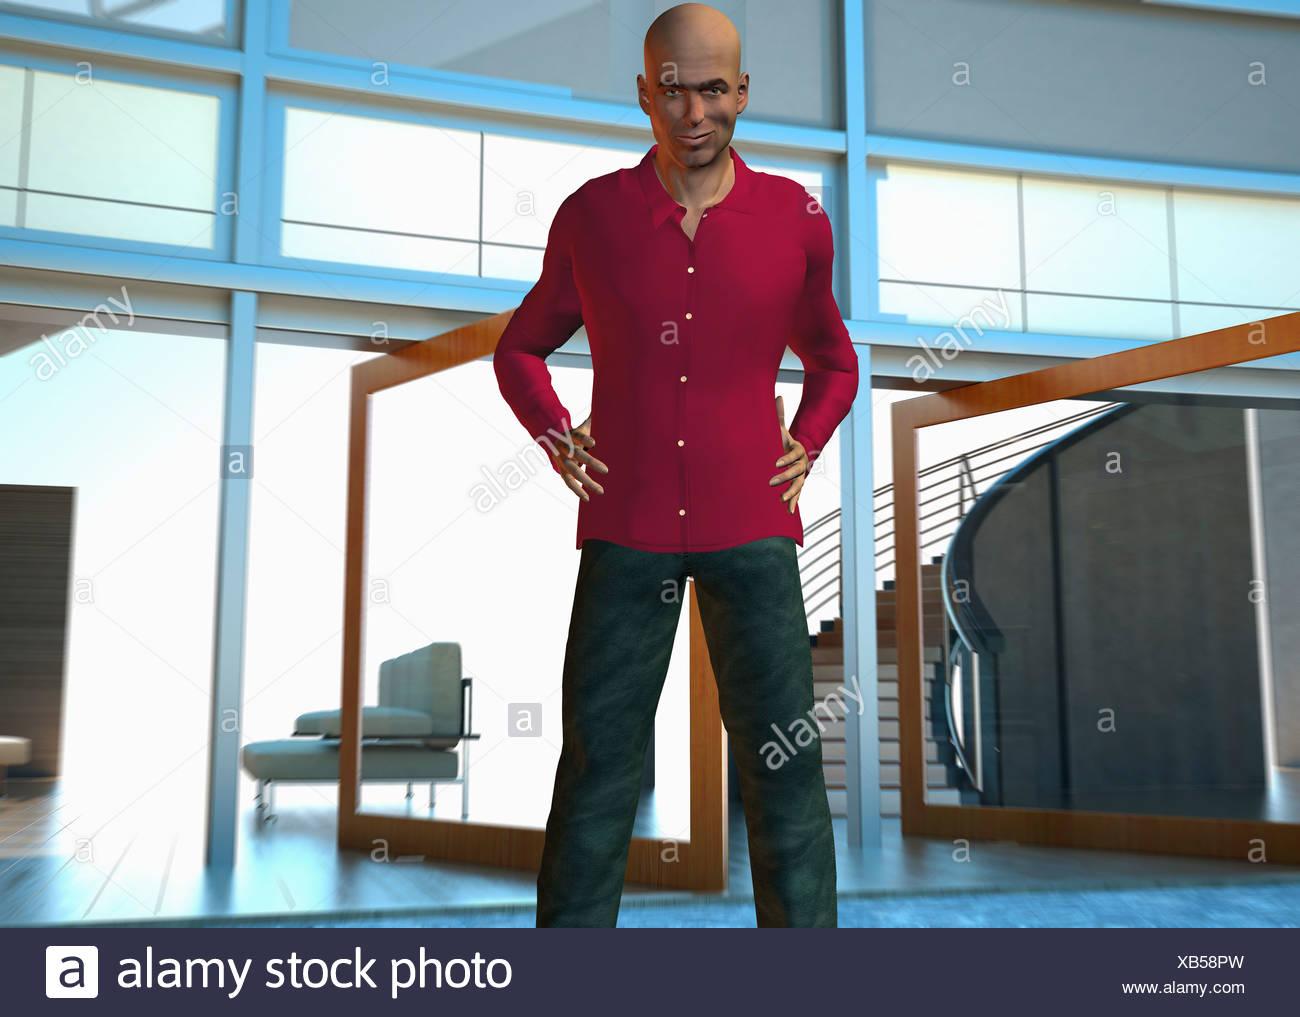 Computer Generated Image Of A Cool Looking Man Posing For Camera - Stock Image